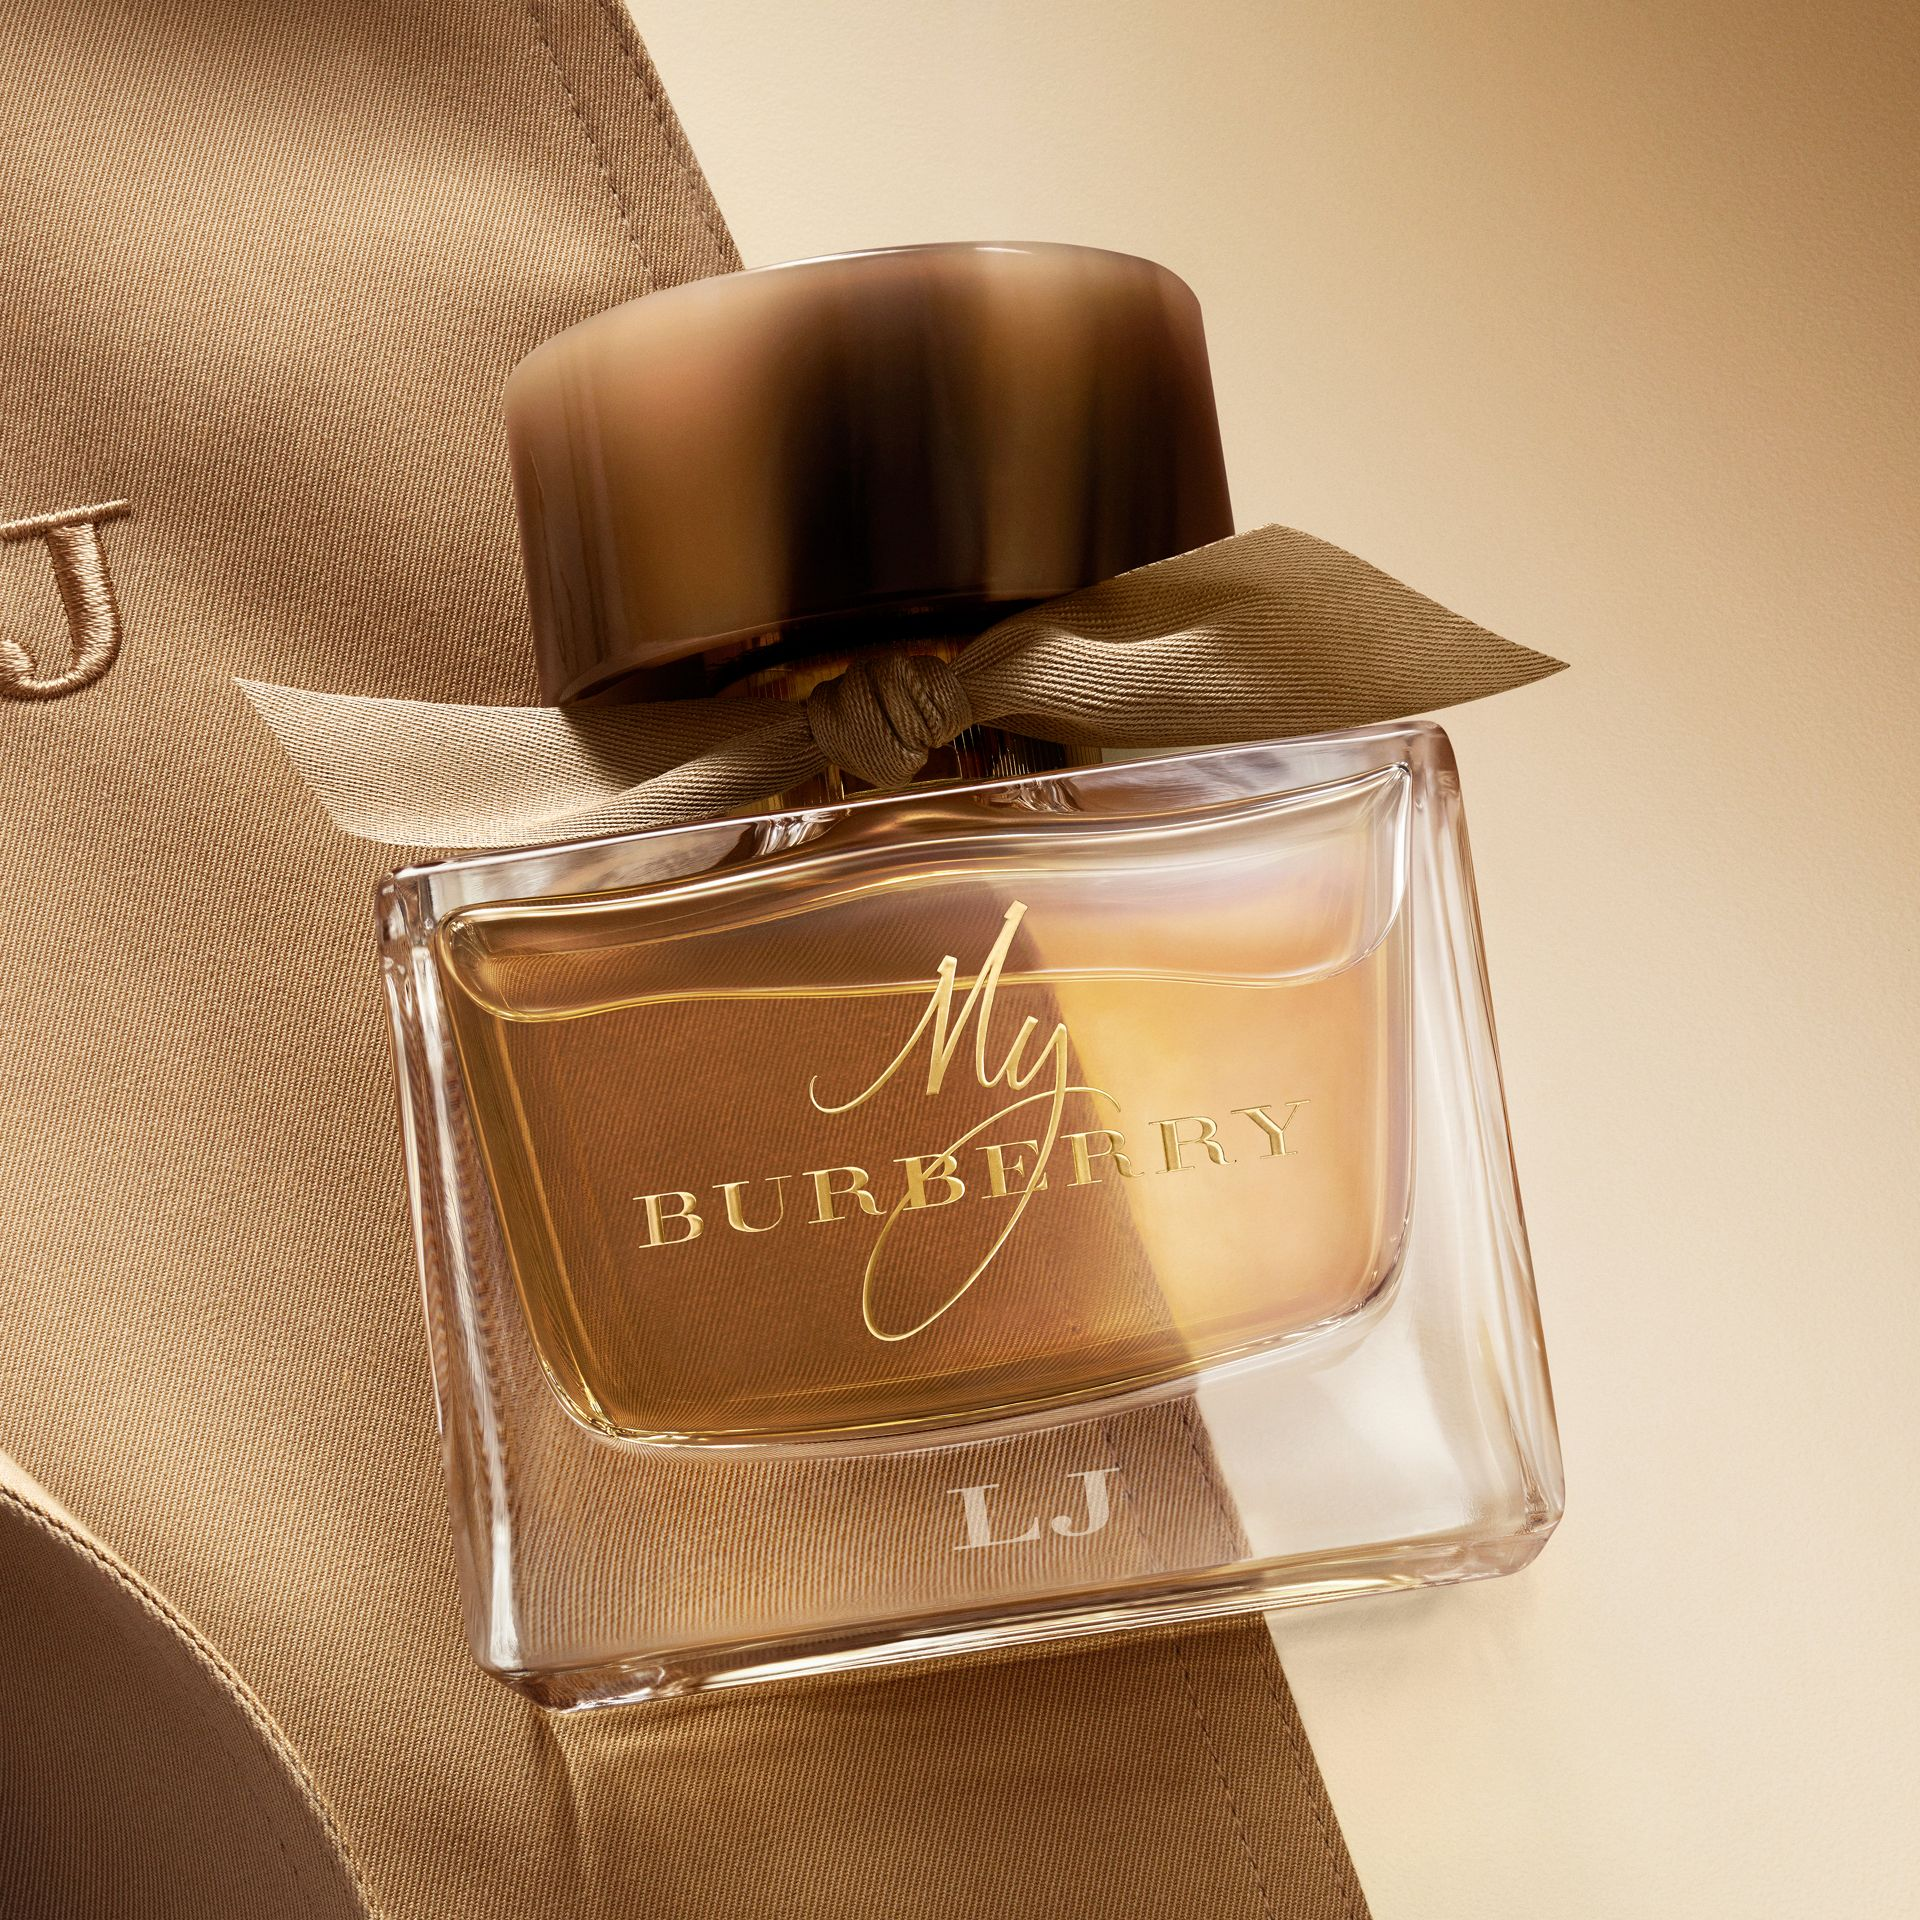 My Burberry Eau de Parfum 90ml - gallery image 4